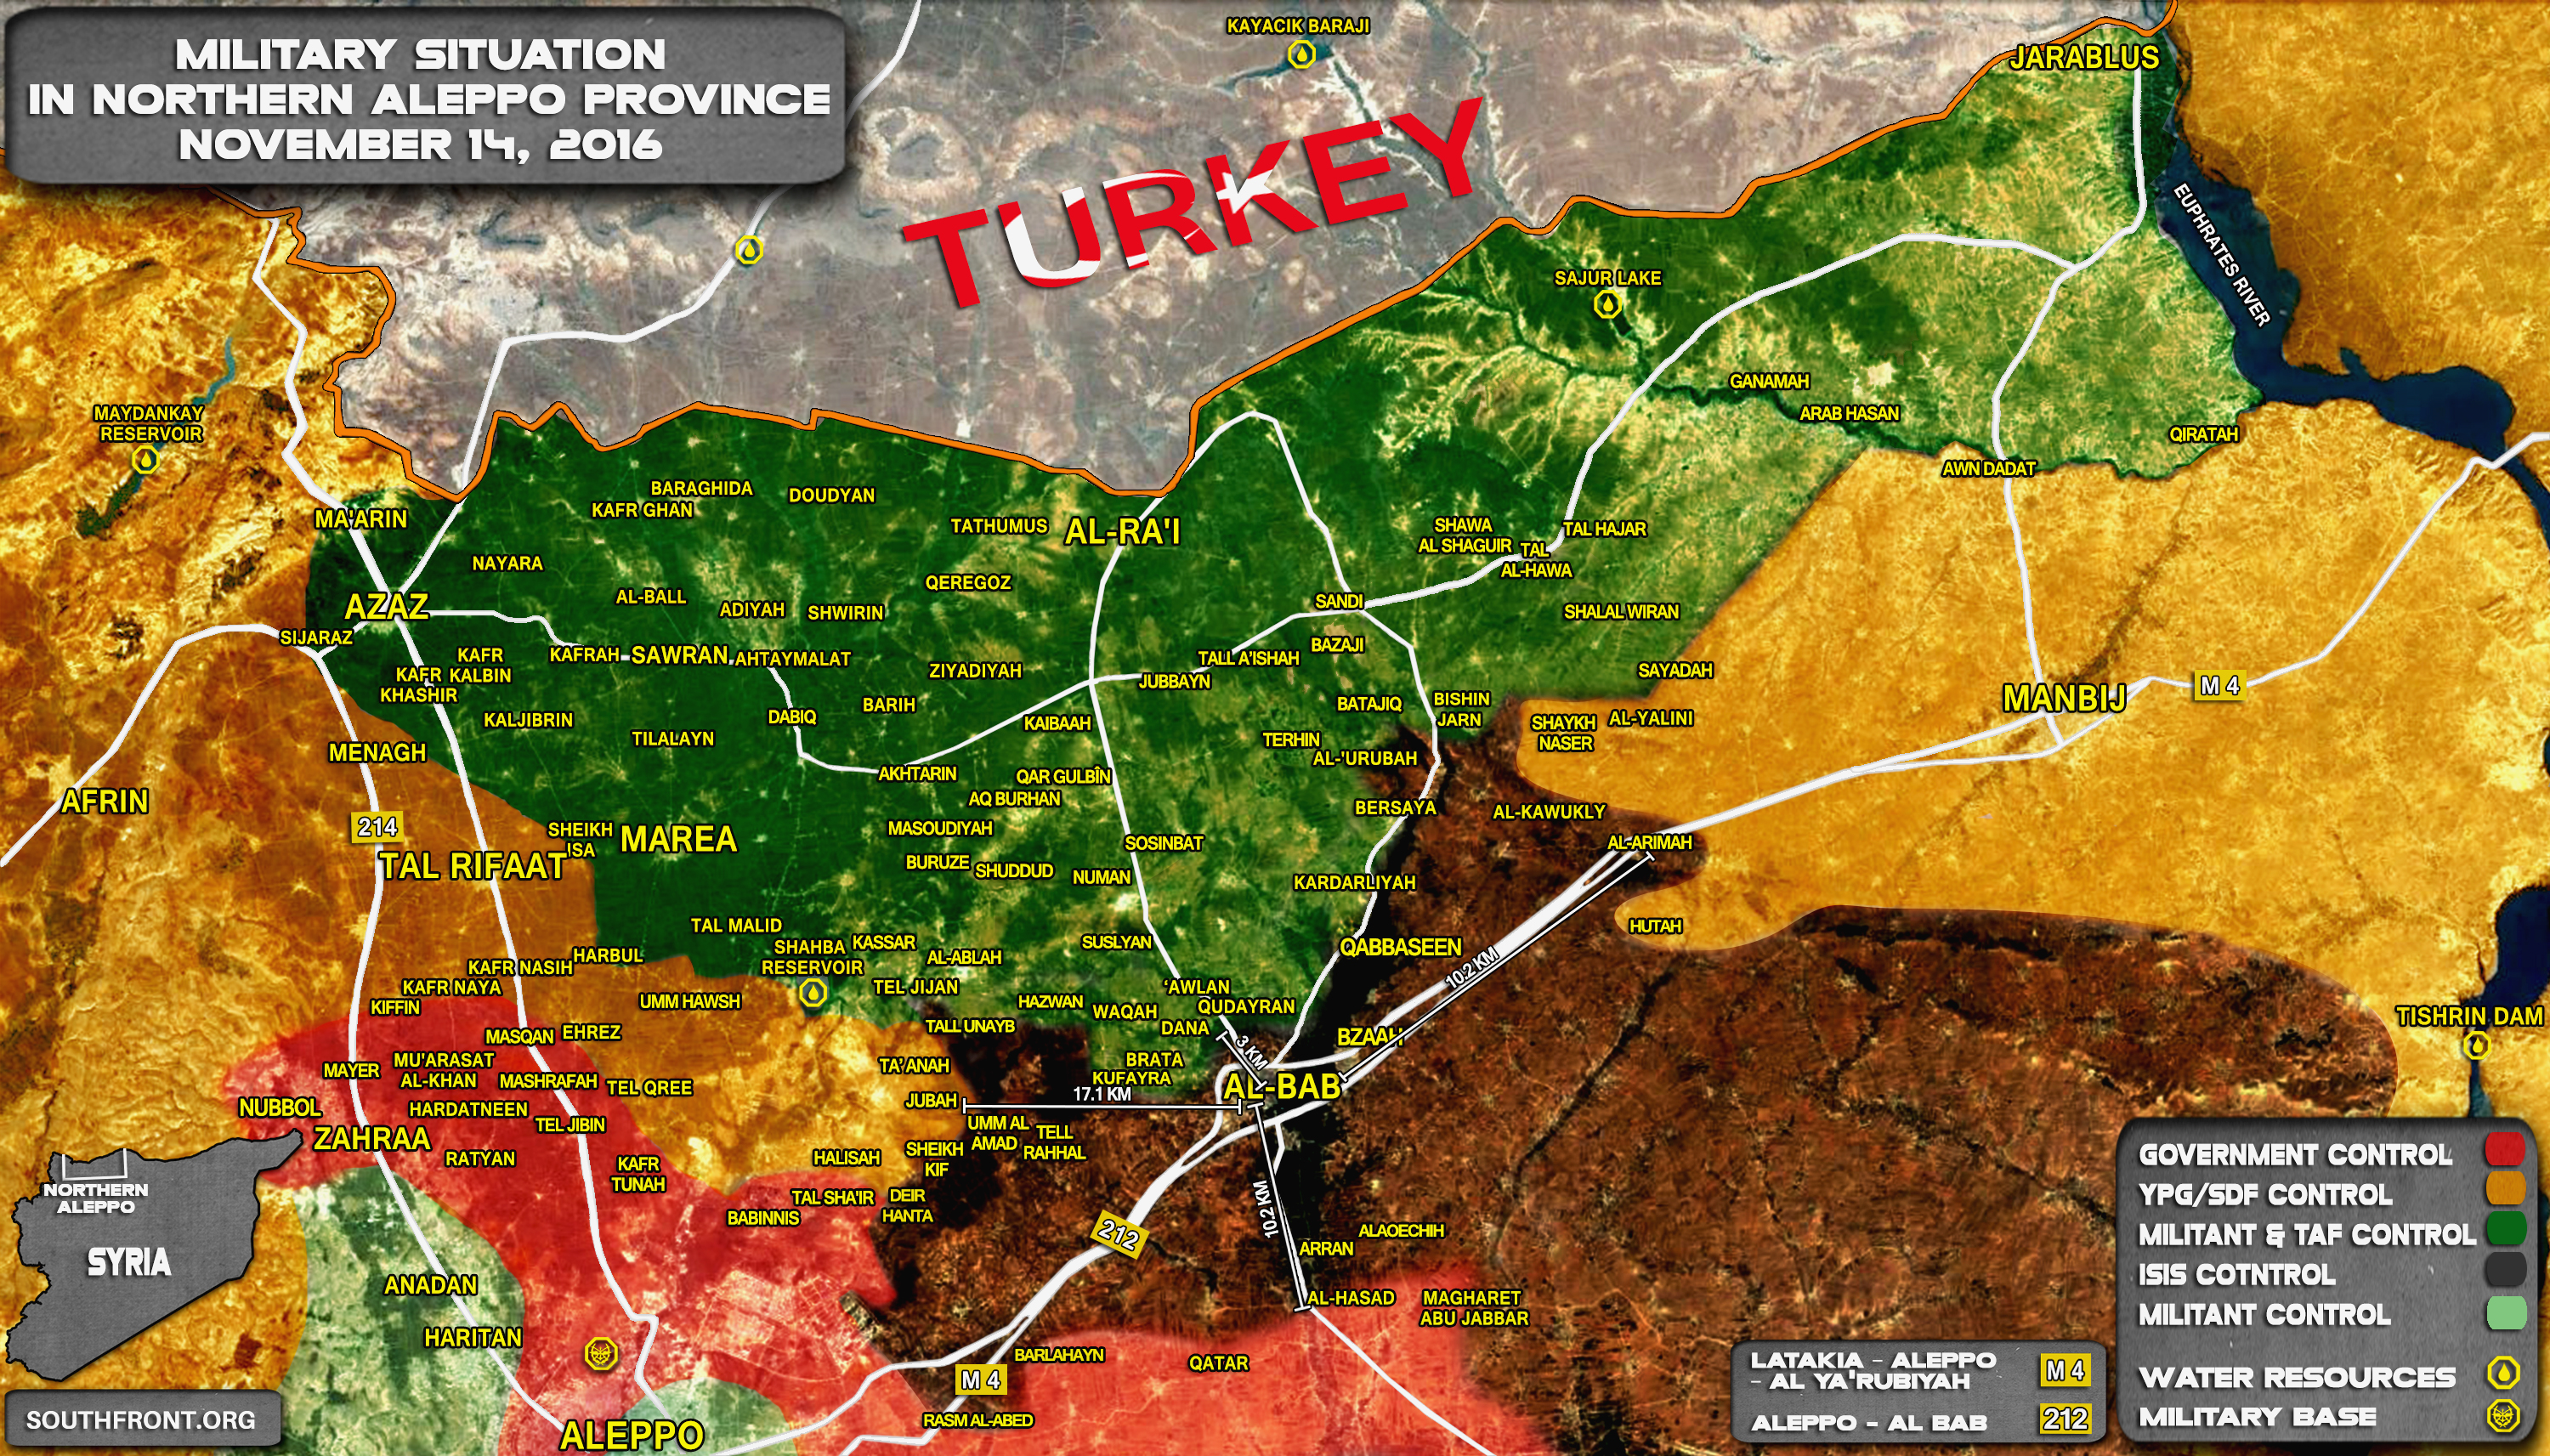 Turkey-led Forces Preparing to Storm ISIS Stronghold of Al-Bab